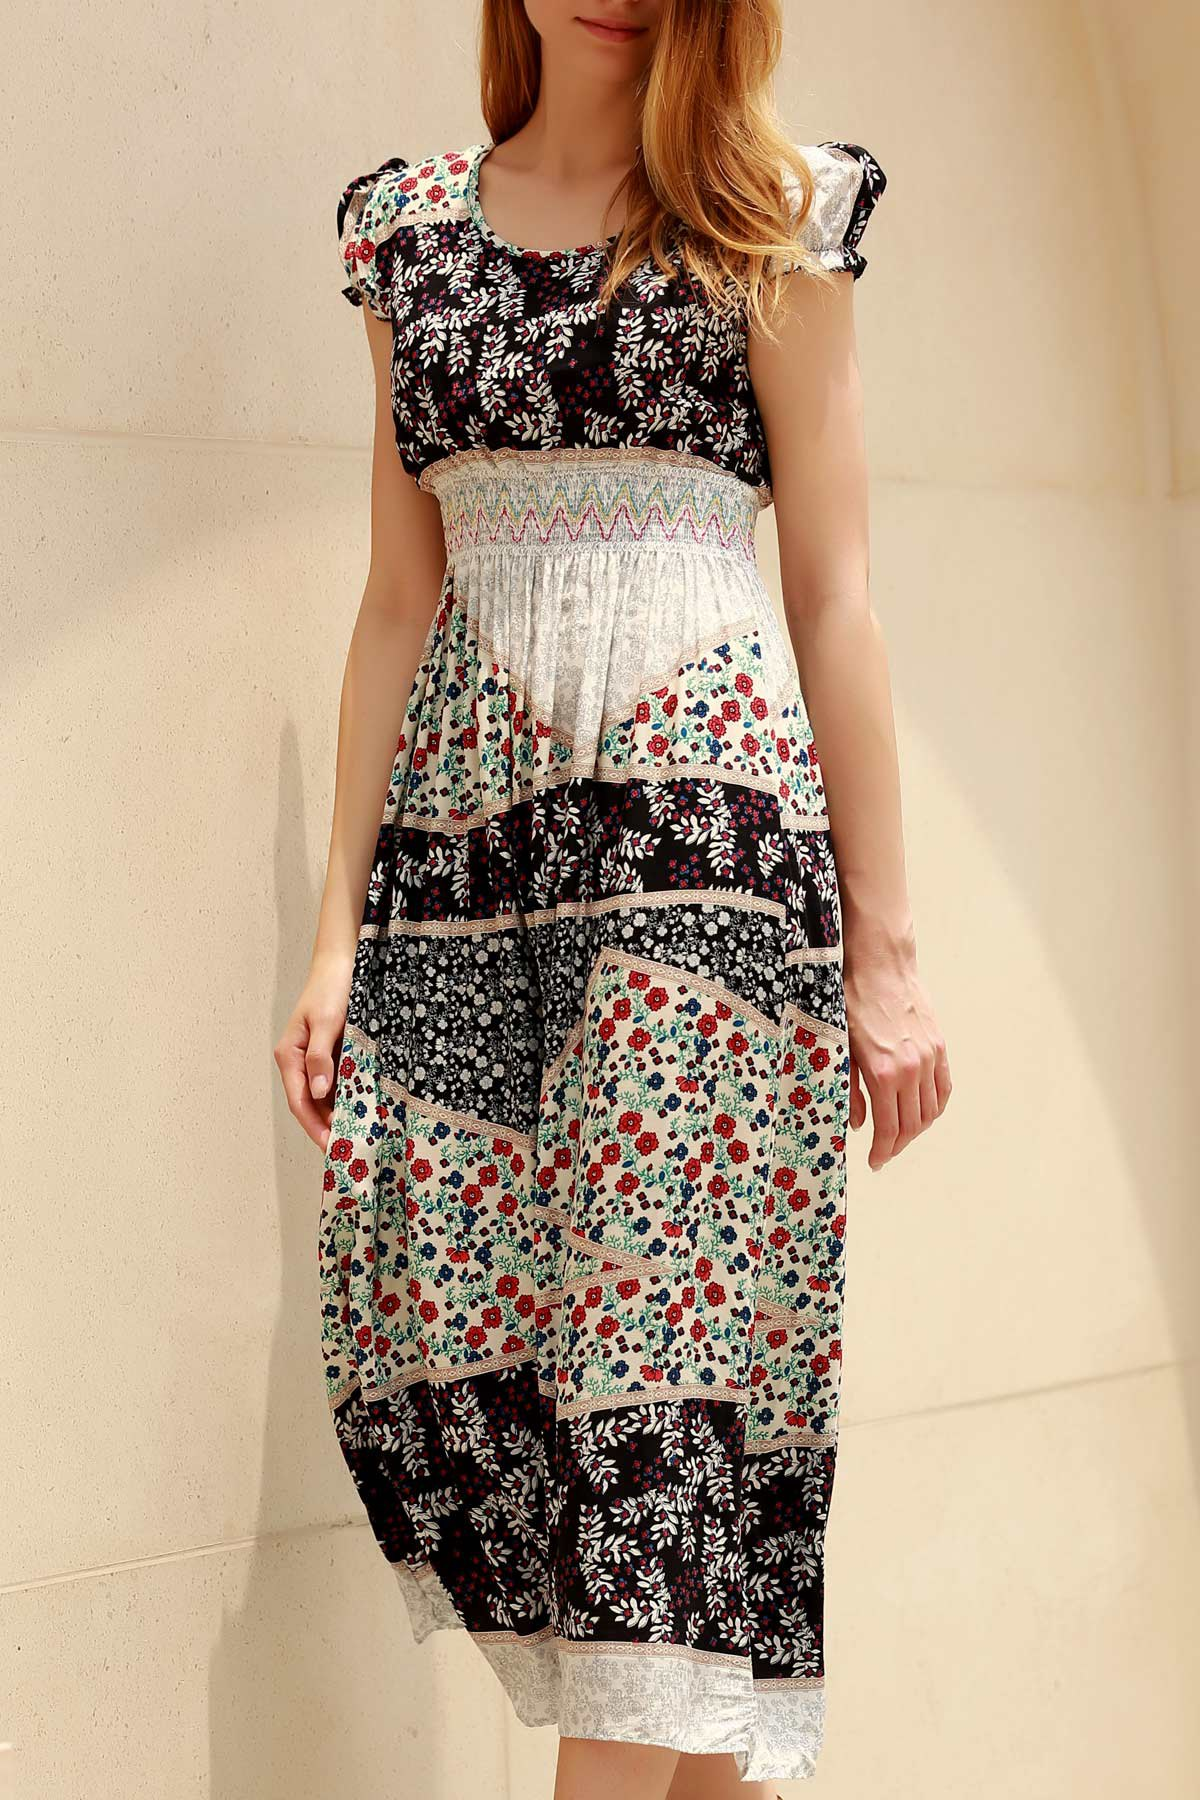 Chic Color Block Cap Sleeve Ethnic Print Midi Dress For Women - COLORMIX ONE SIZE(FIT SIZE XS TO M)